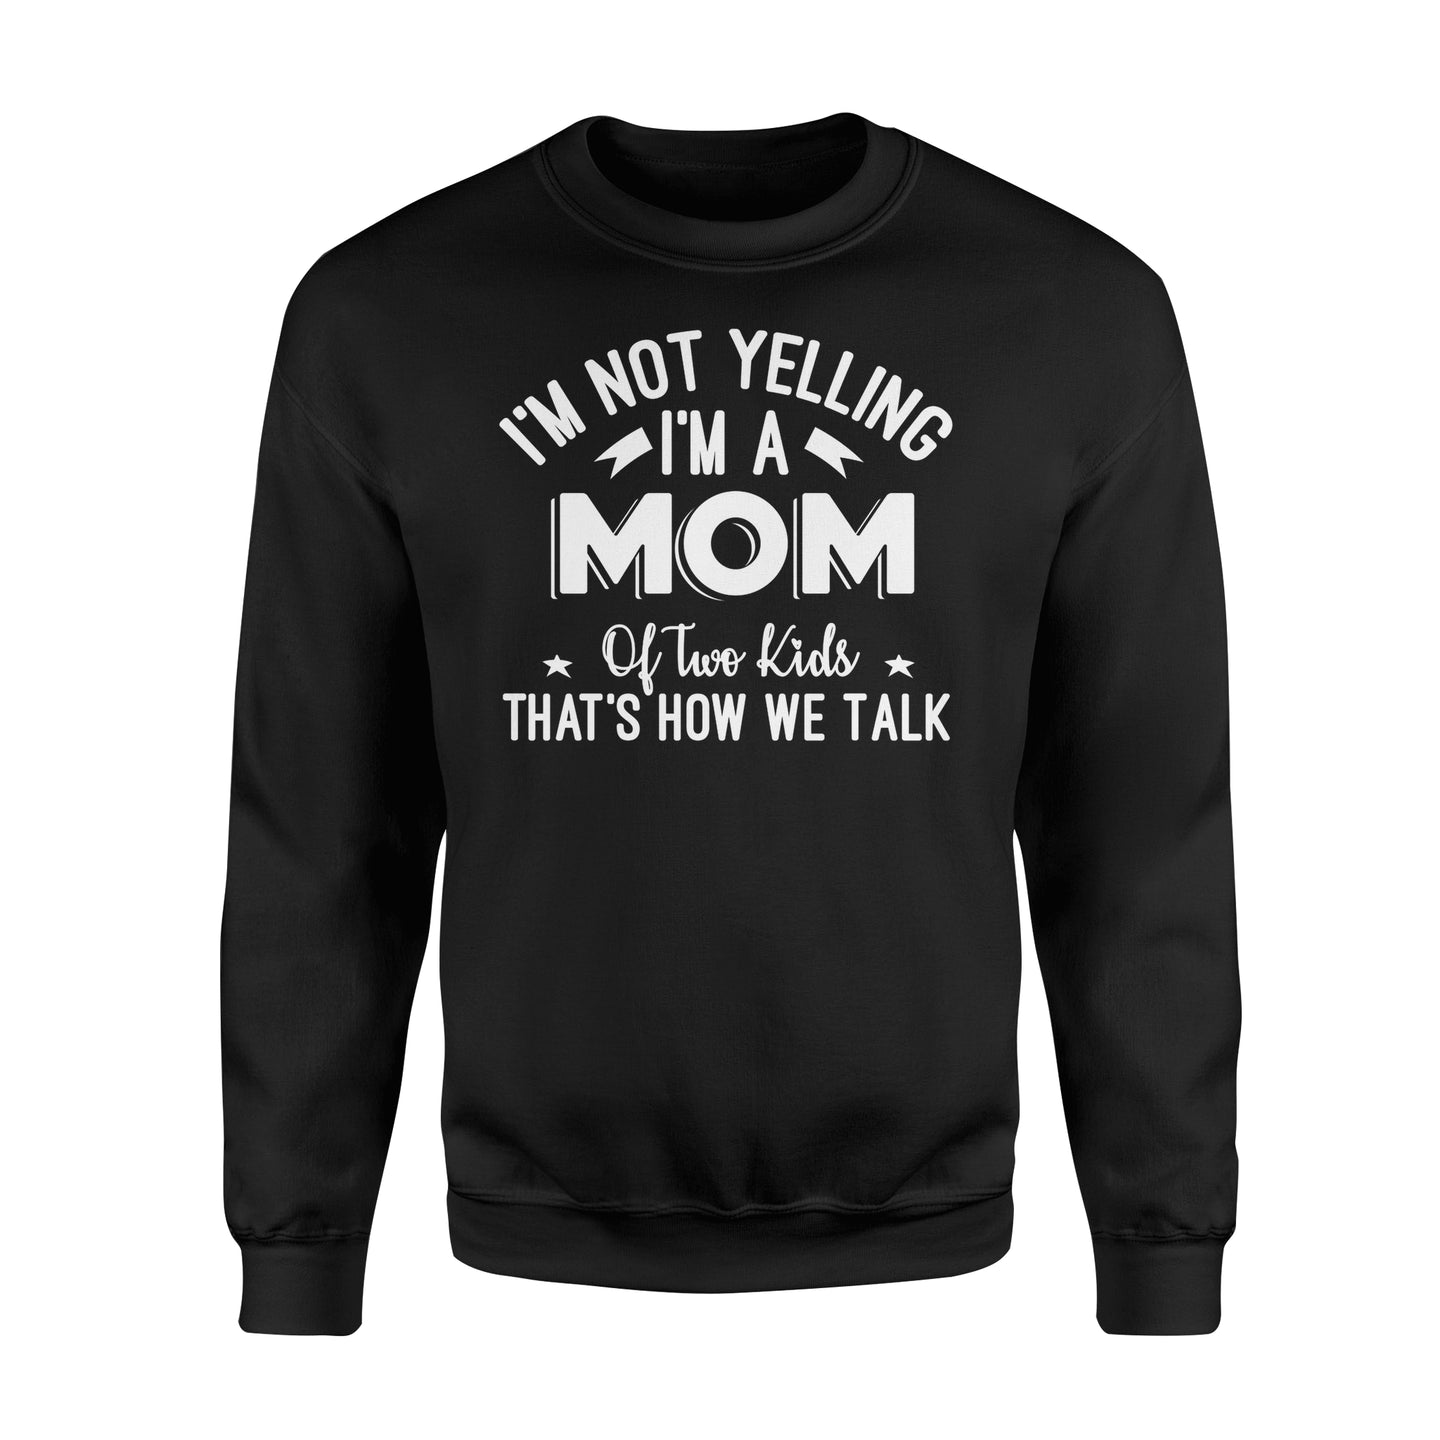 I'm Not Yelling I'm A Mom Of Two Kids Thats How We Talk - Standard Fleece Sweatshirt